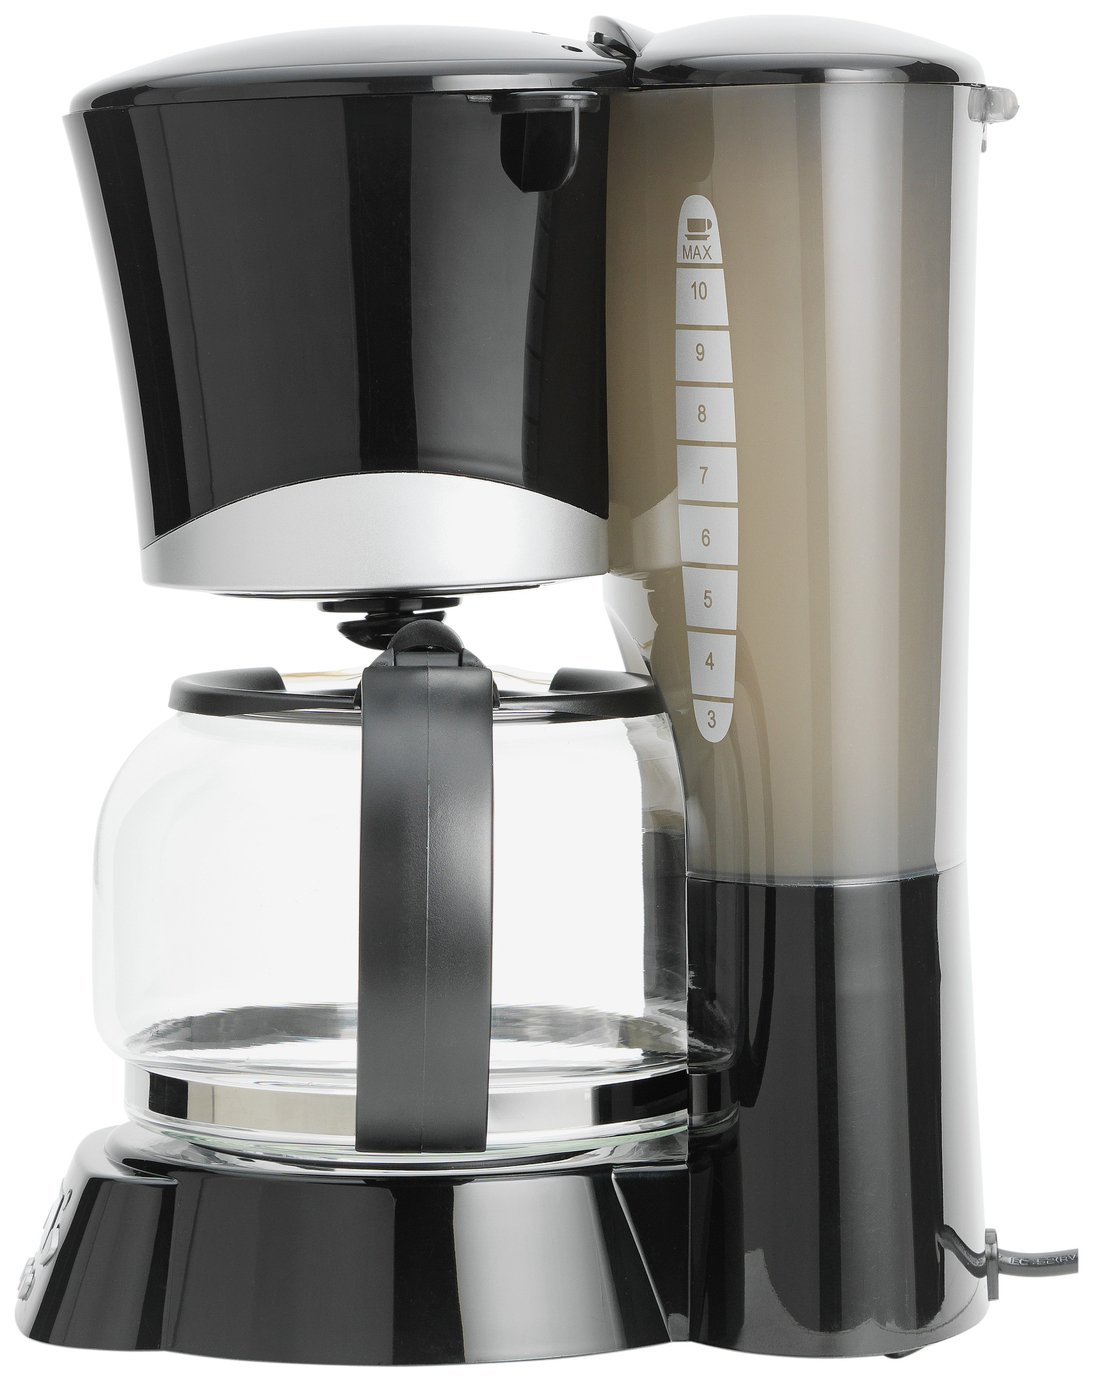 Cookworks Filter Coffee Maker With Timer Reviews